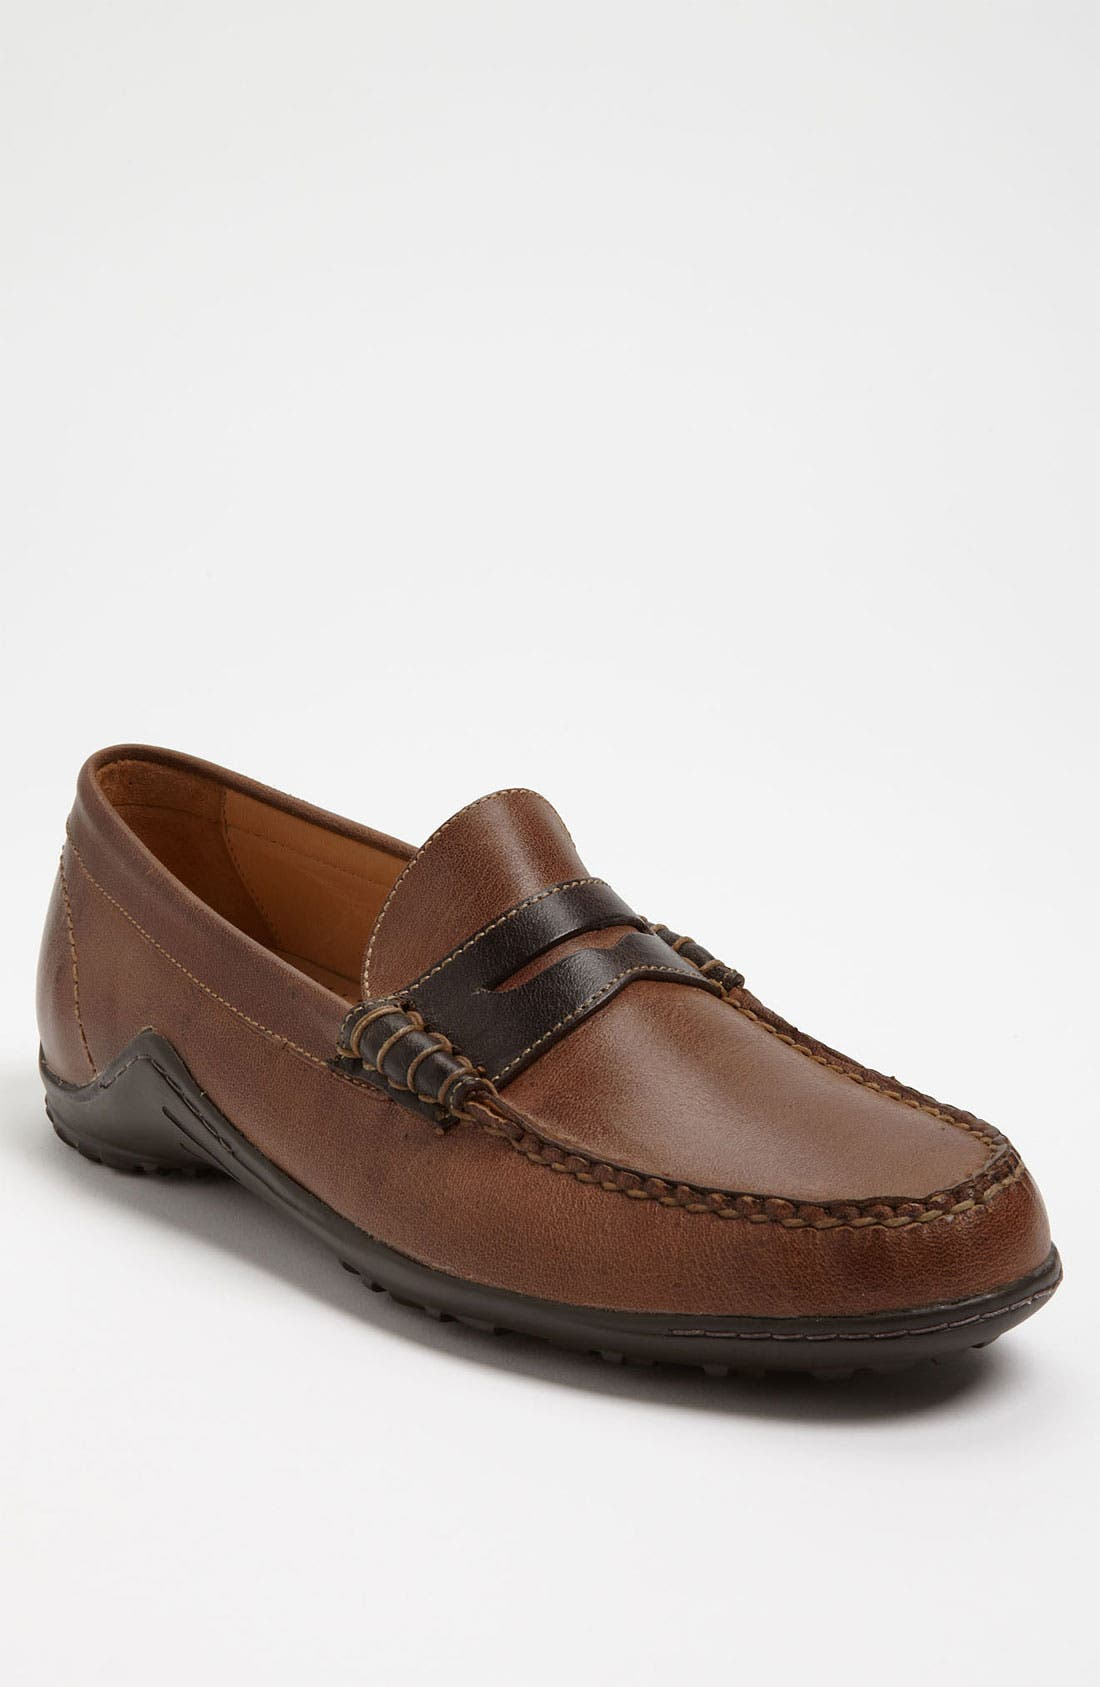 Main Image - Martin Dingman 'Bill' Penny Loafer